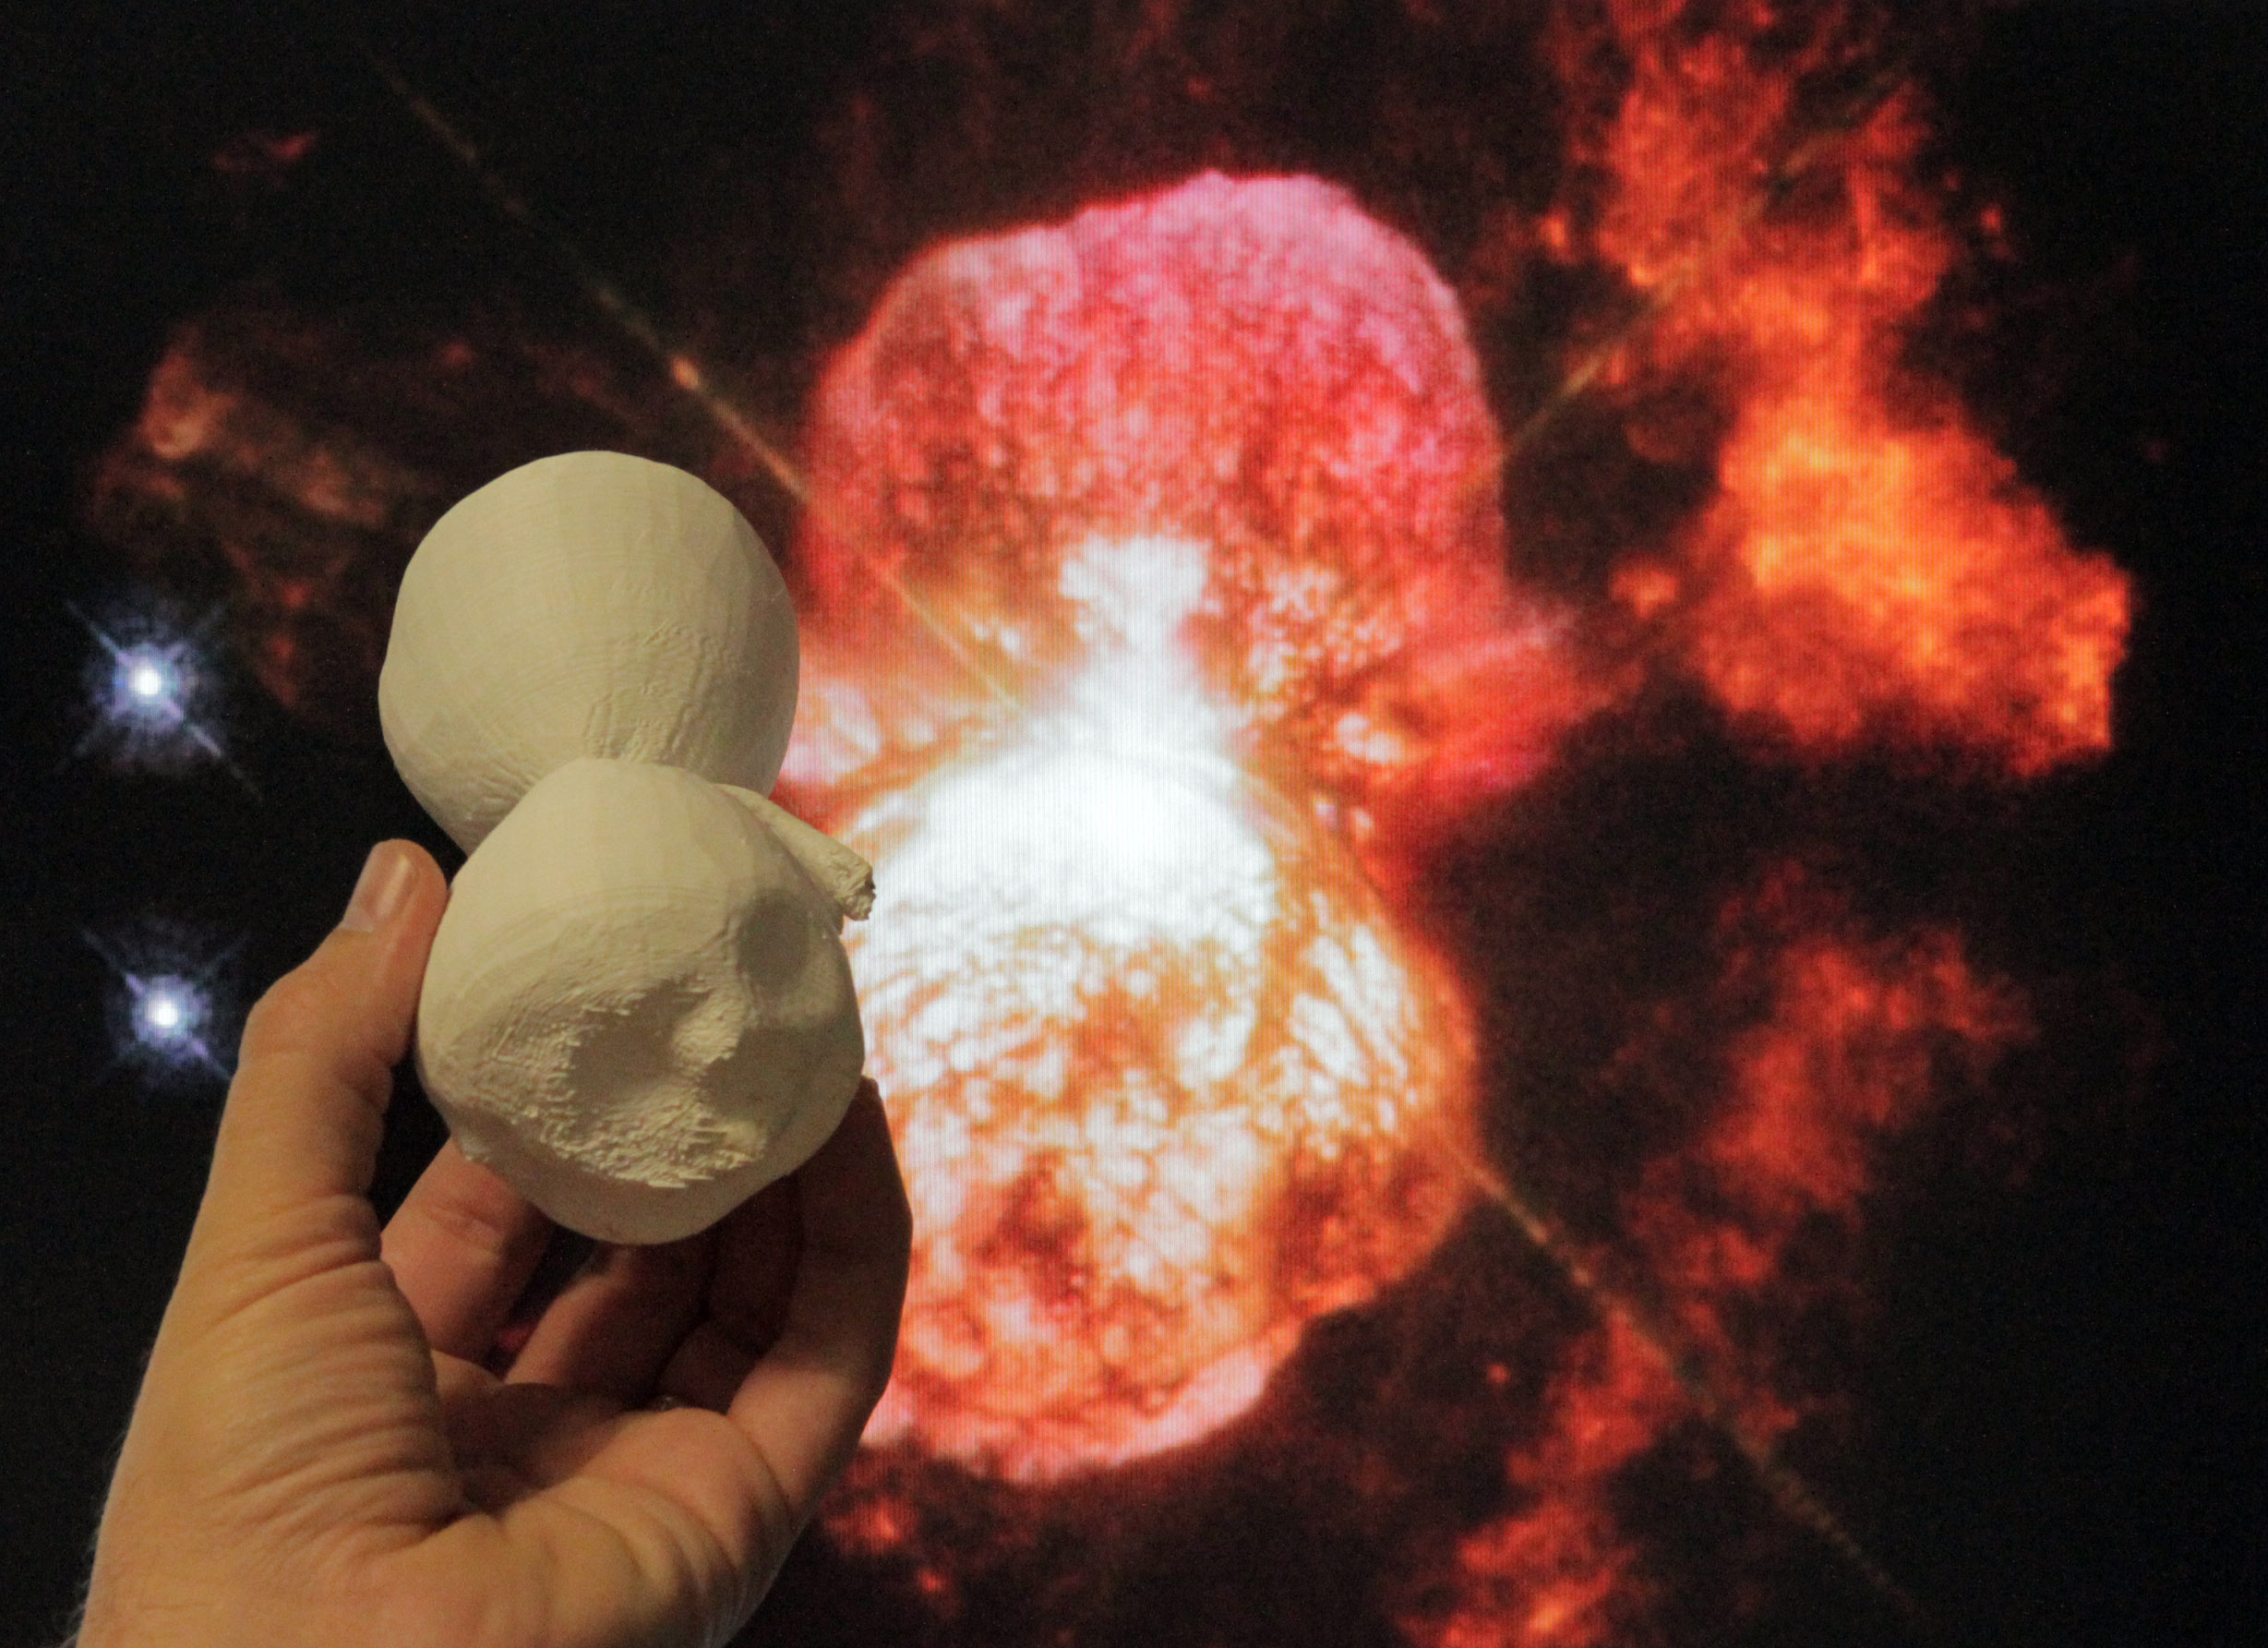 Astronomers Craft 3-D Model of Doomed Star's Outburst